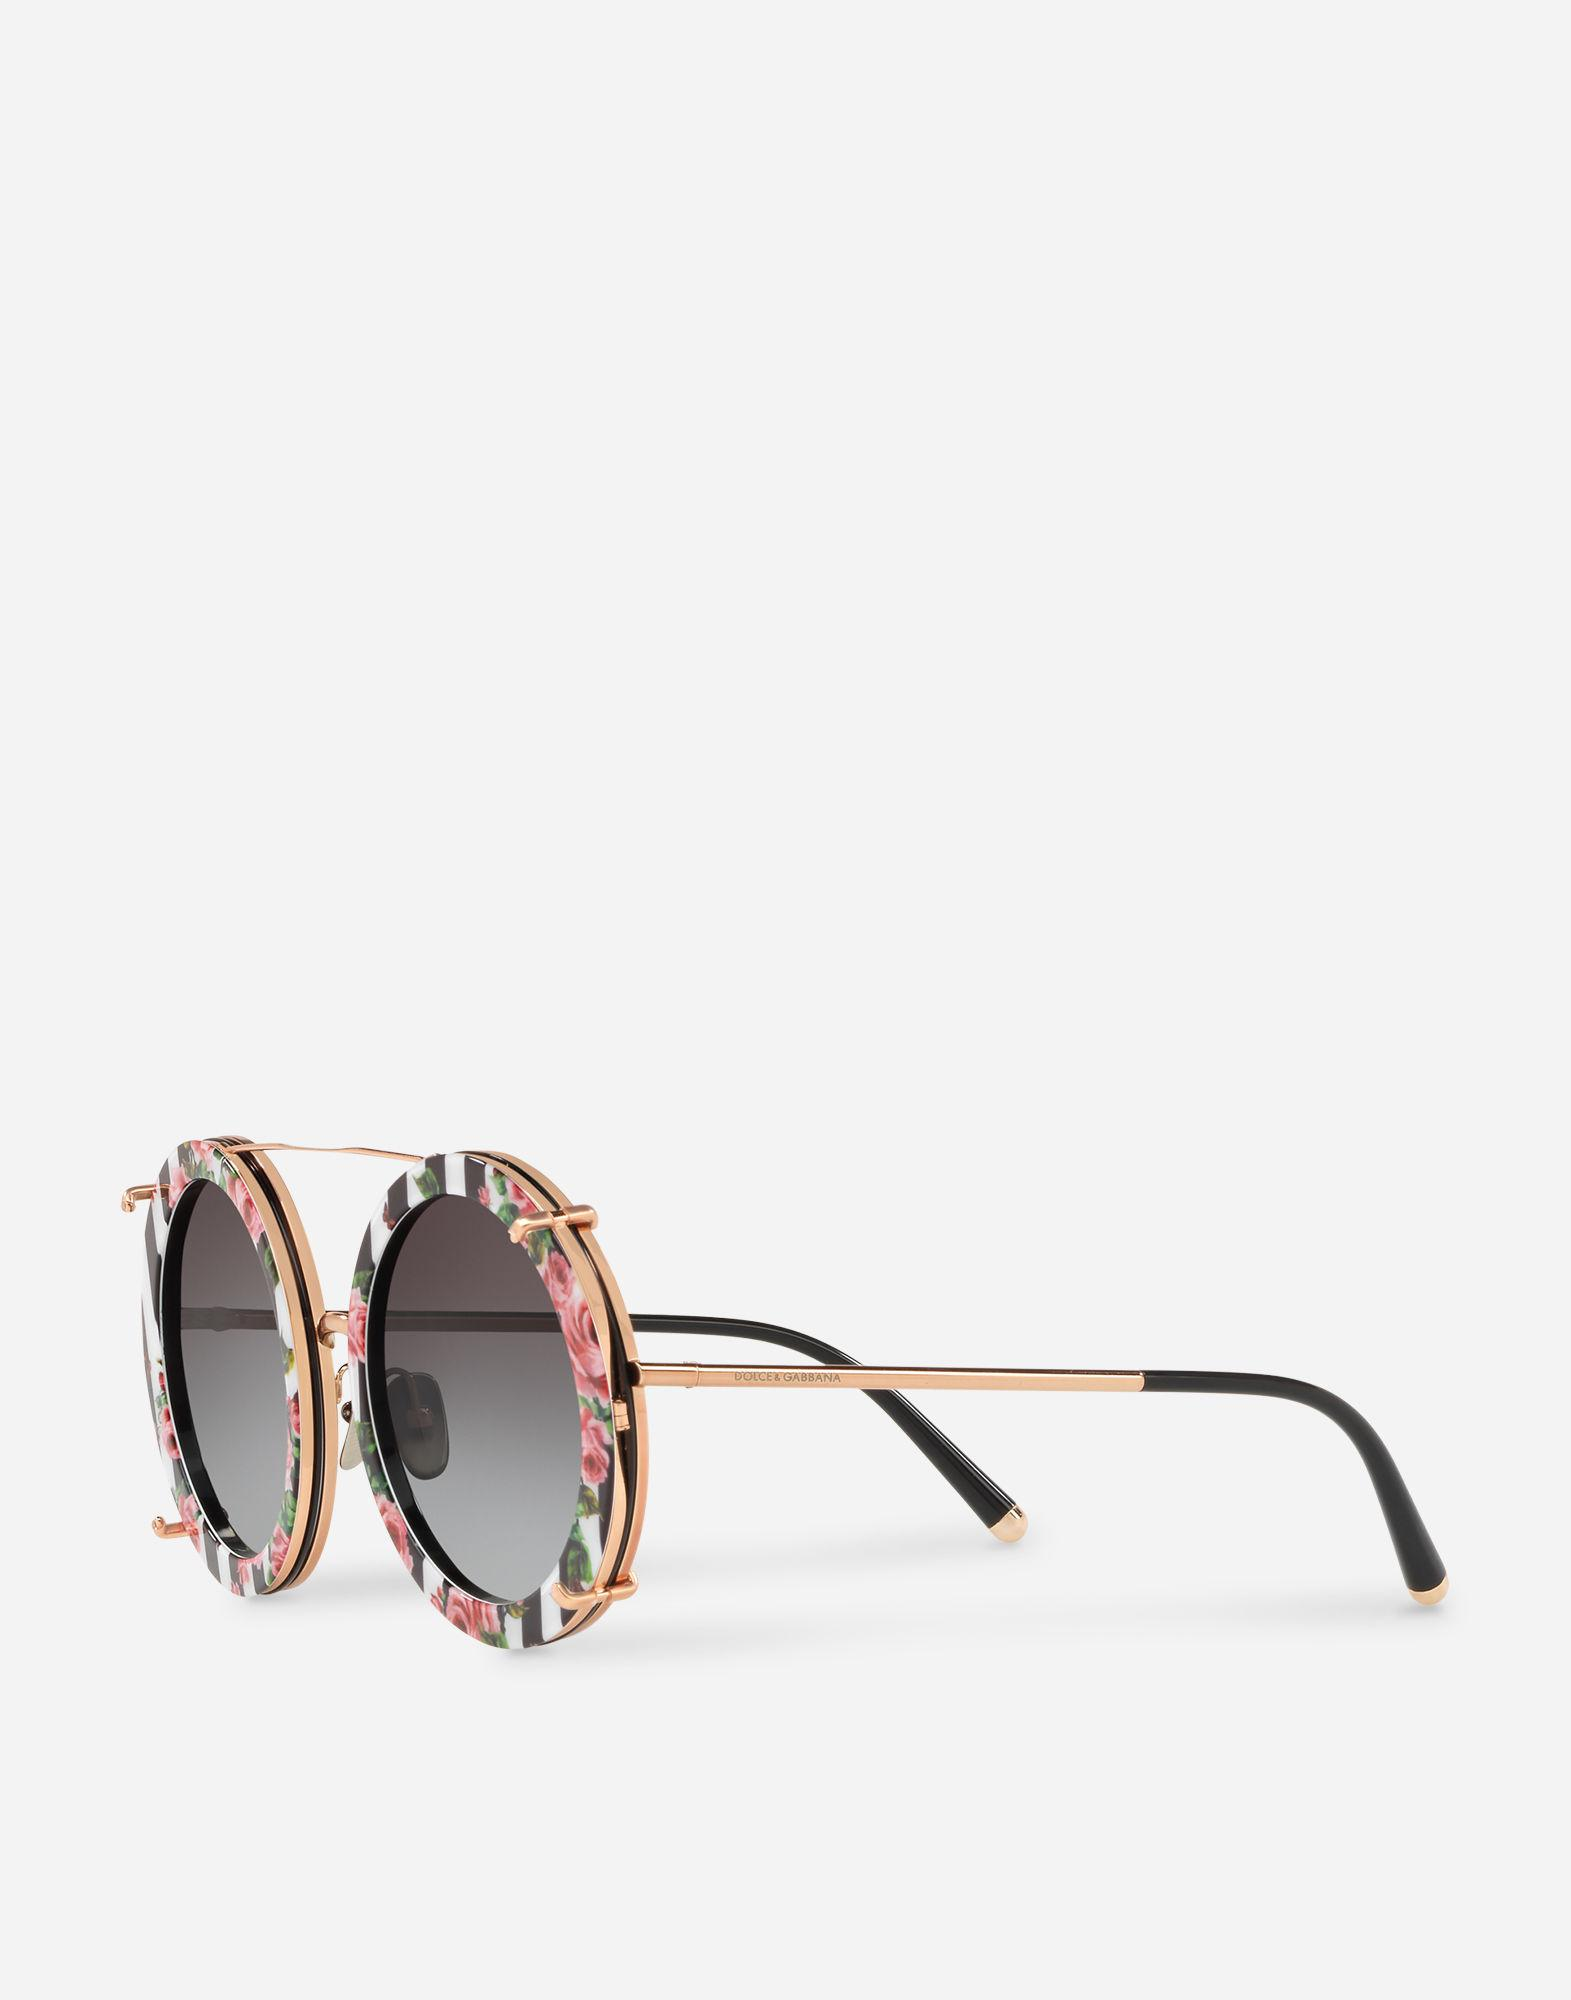 6020c3364dd Lyst - Dolce   Gabbana Round Clip-on Sunglasses In Gold Metal With Stripe  And Rose Print in Metallic